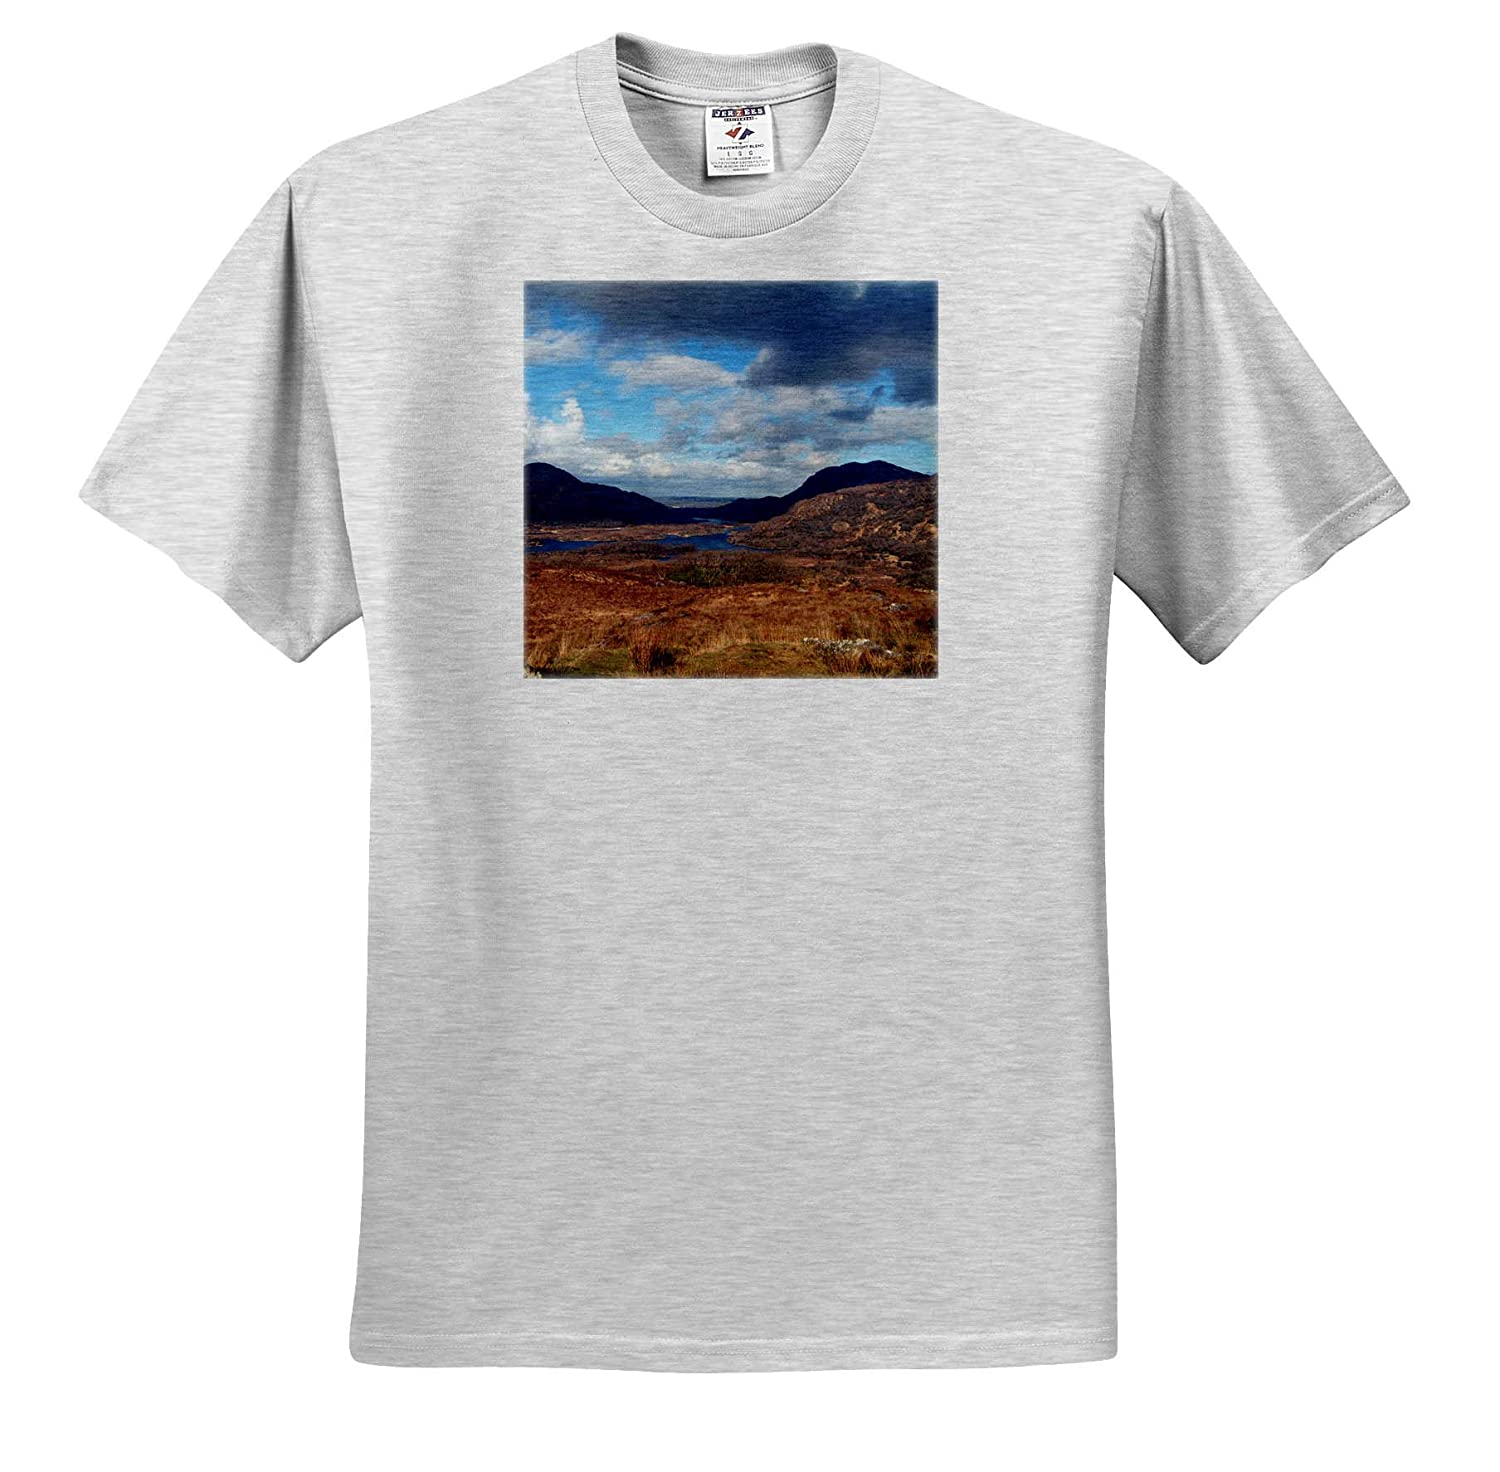 3dRose Jos Fauxtographee T-Shirts A hilly Ireland Landscape with Blues and tans Ireland Landscape